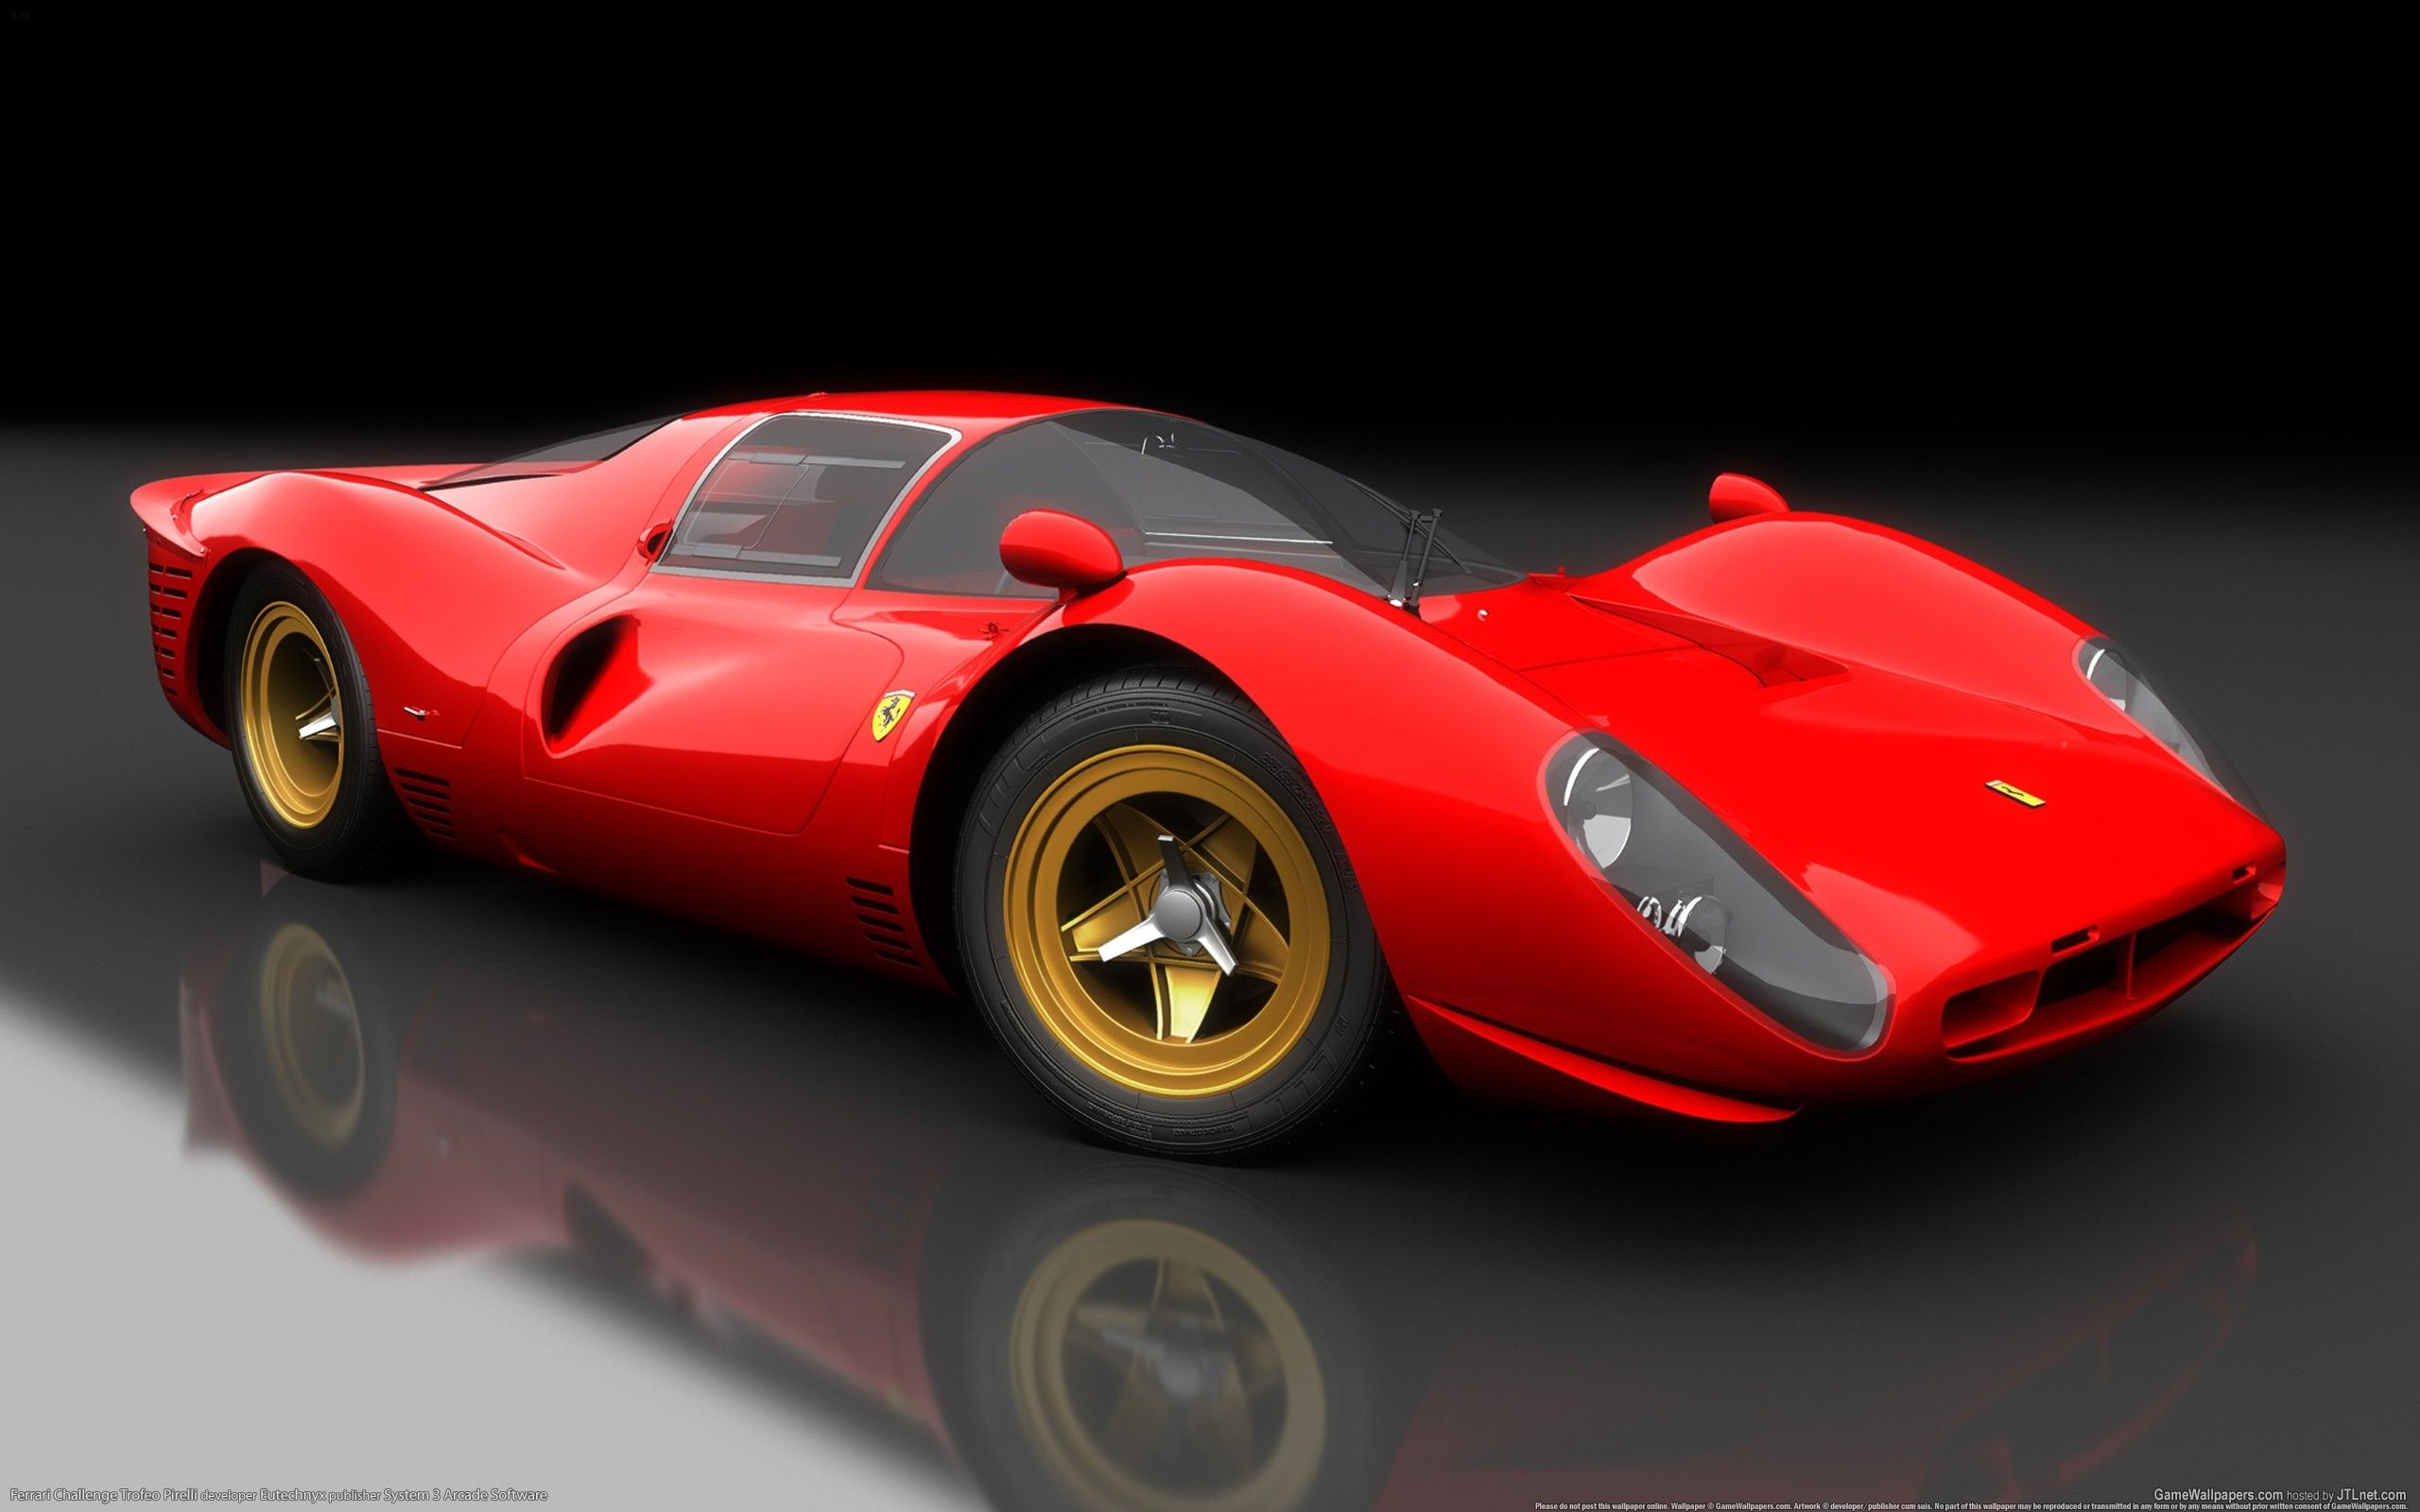 Ferrari 330 P4 Car Wallpapers Ferrari Ferrari Vintage